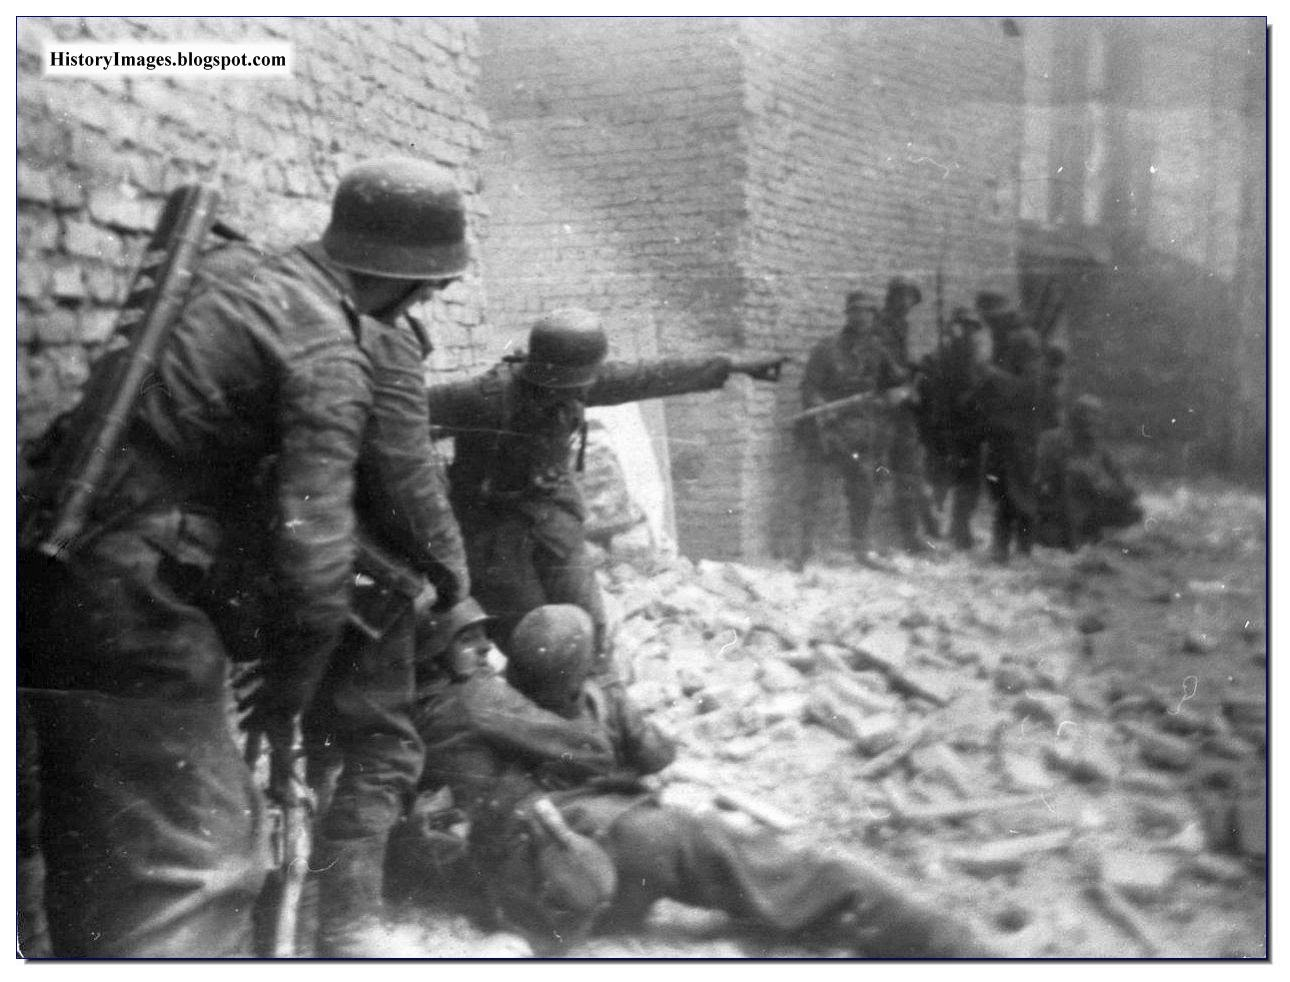 September 18 1944 Germans carry their wounded during  Warsaw Uprising Rare WW2 Image